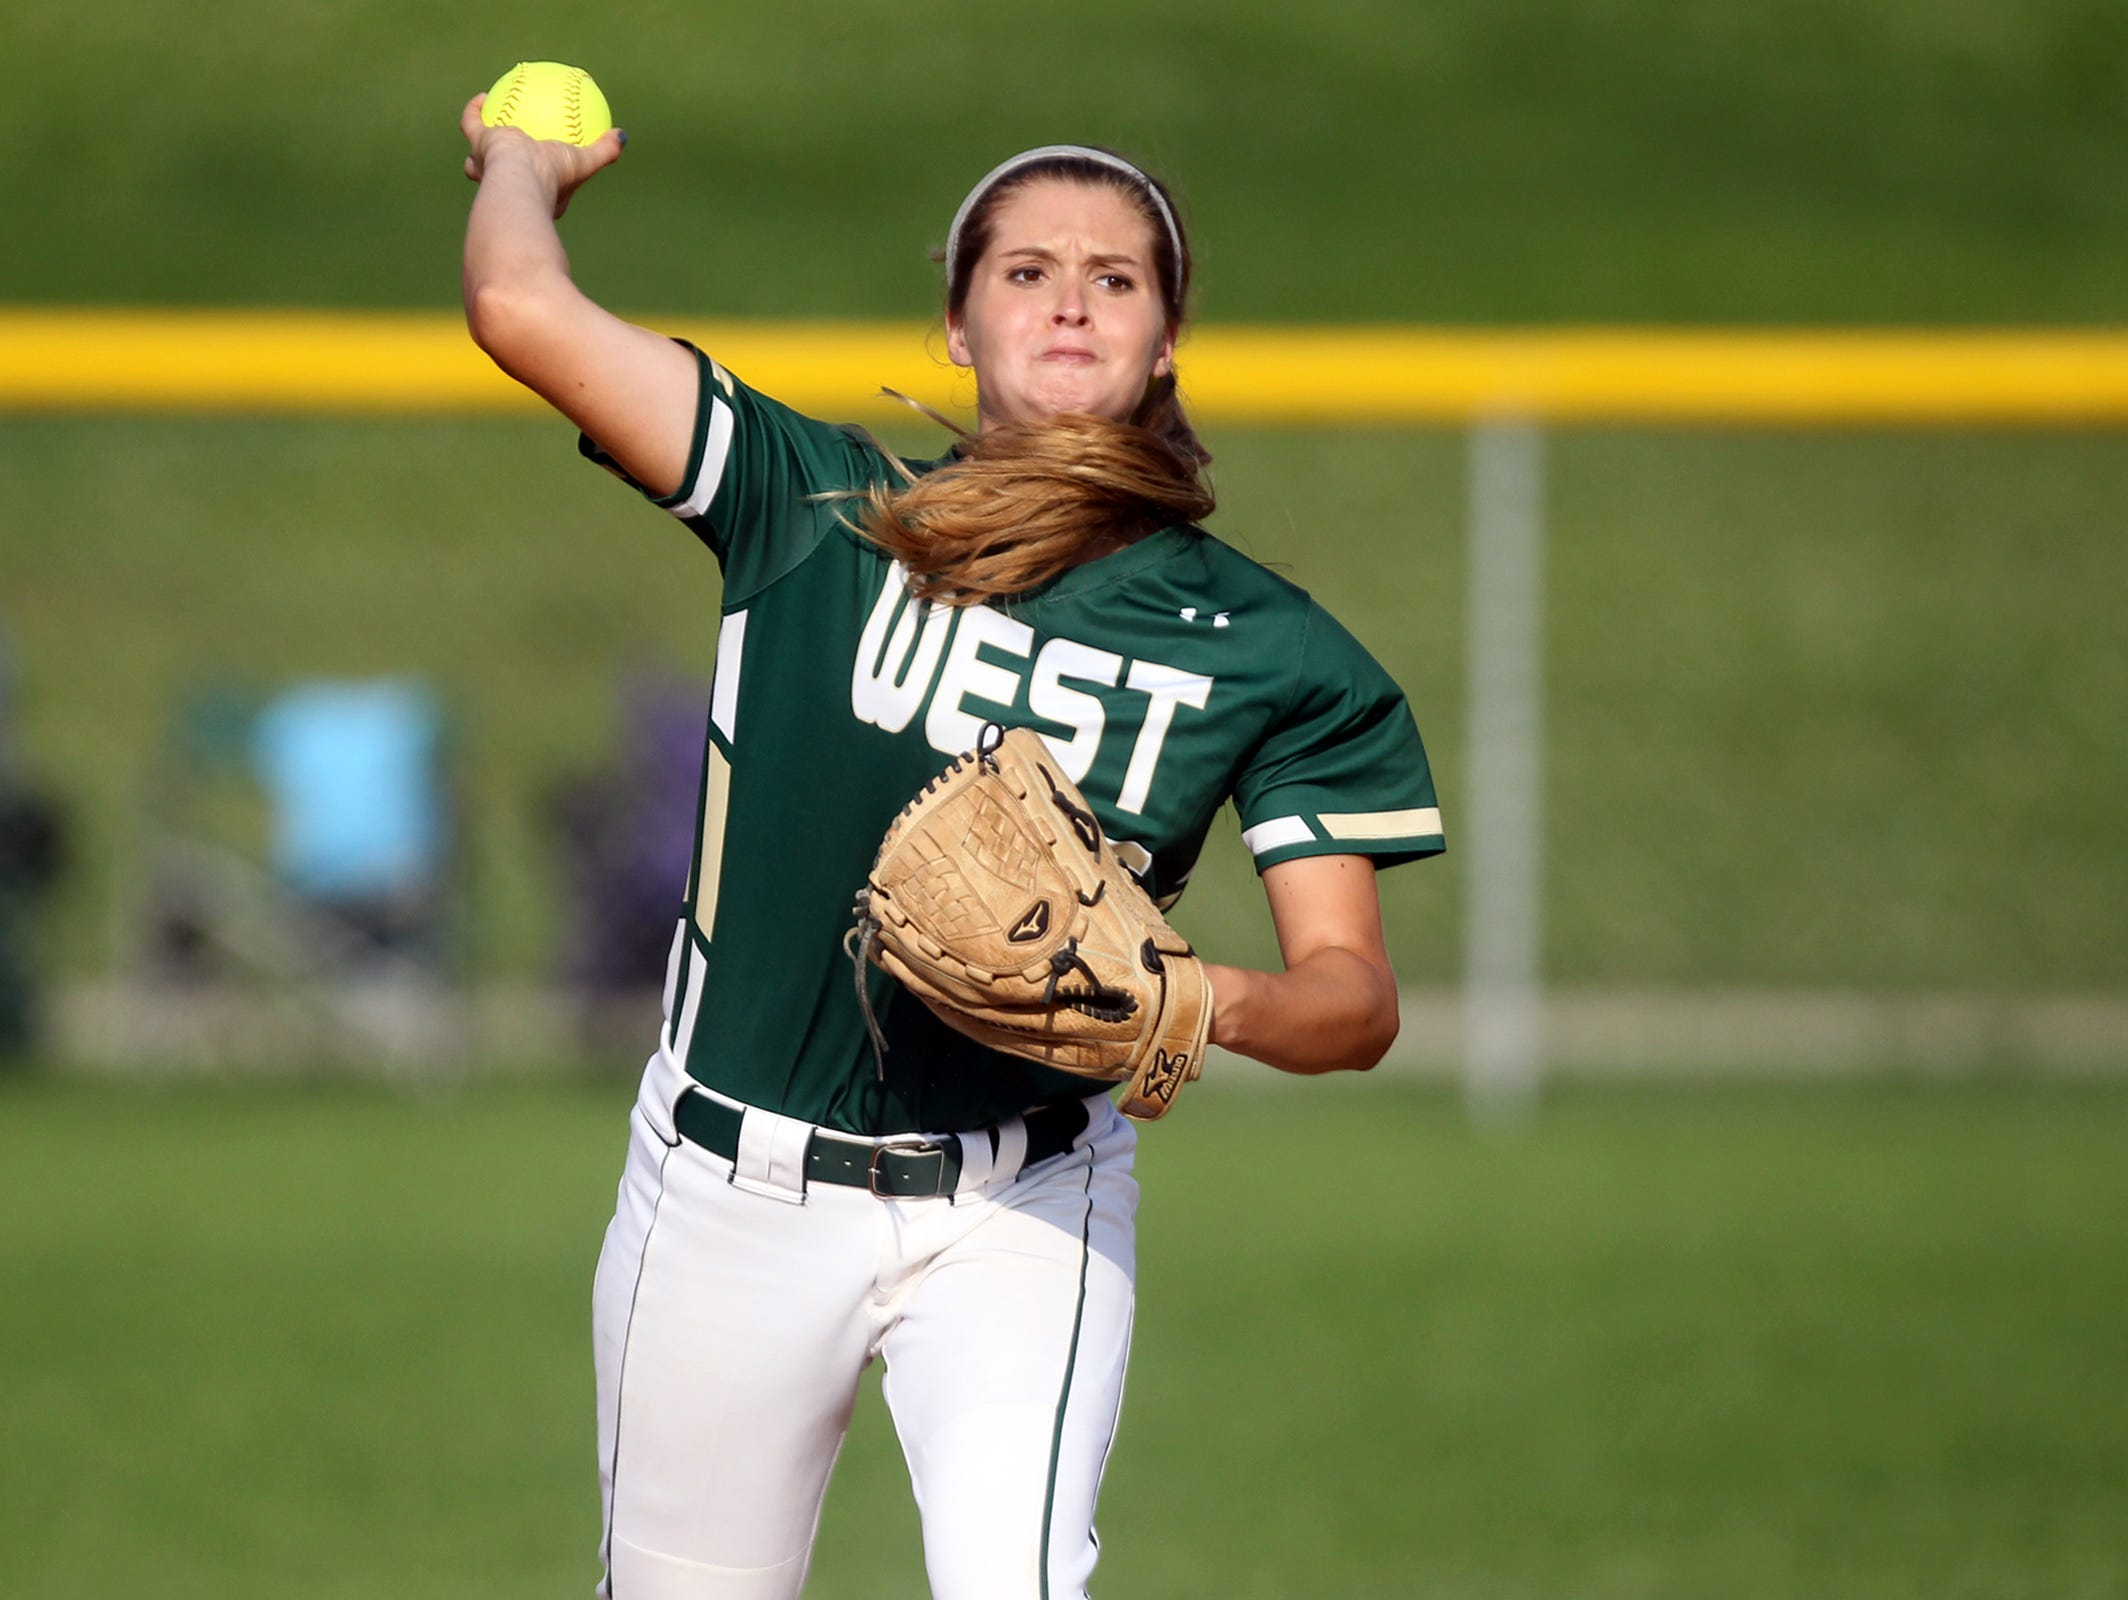 West High's Grace Tafolla throws to first base during the Women of Troy's game against Dubuque Senior on Thursday, June 25, 2015.